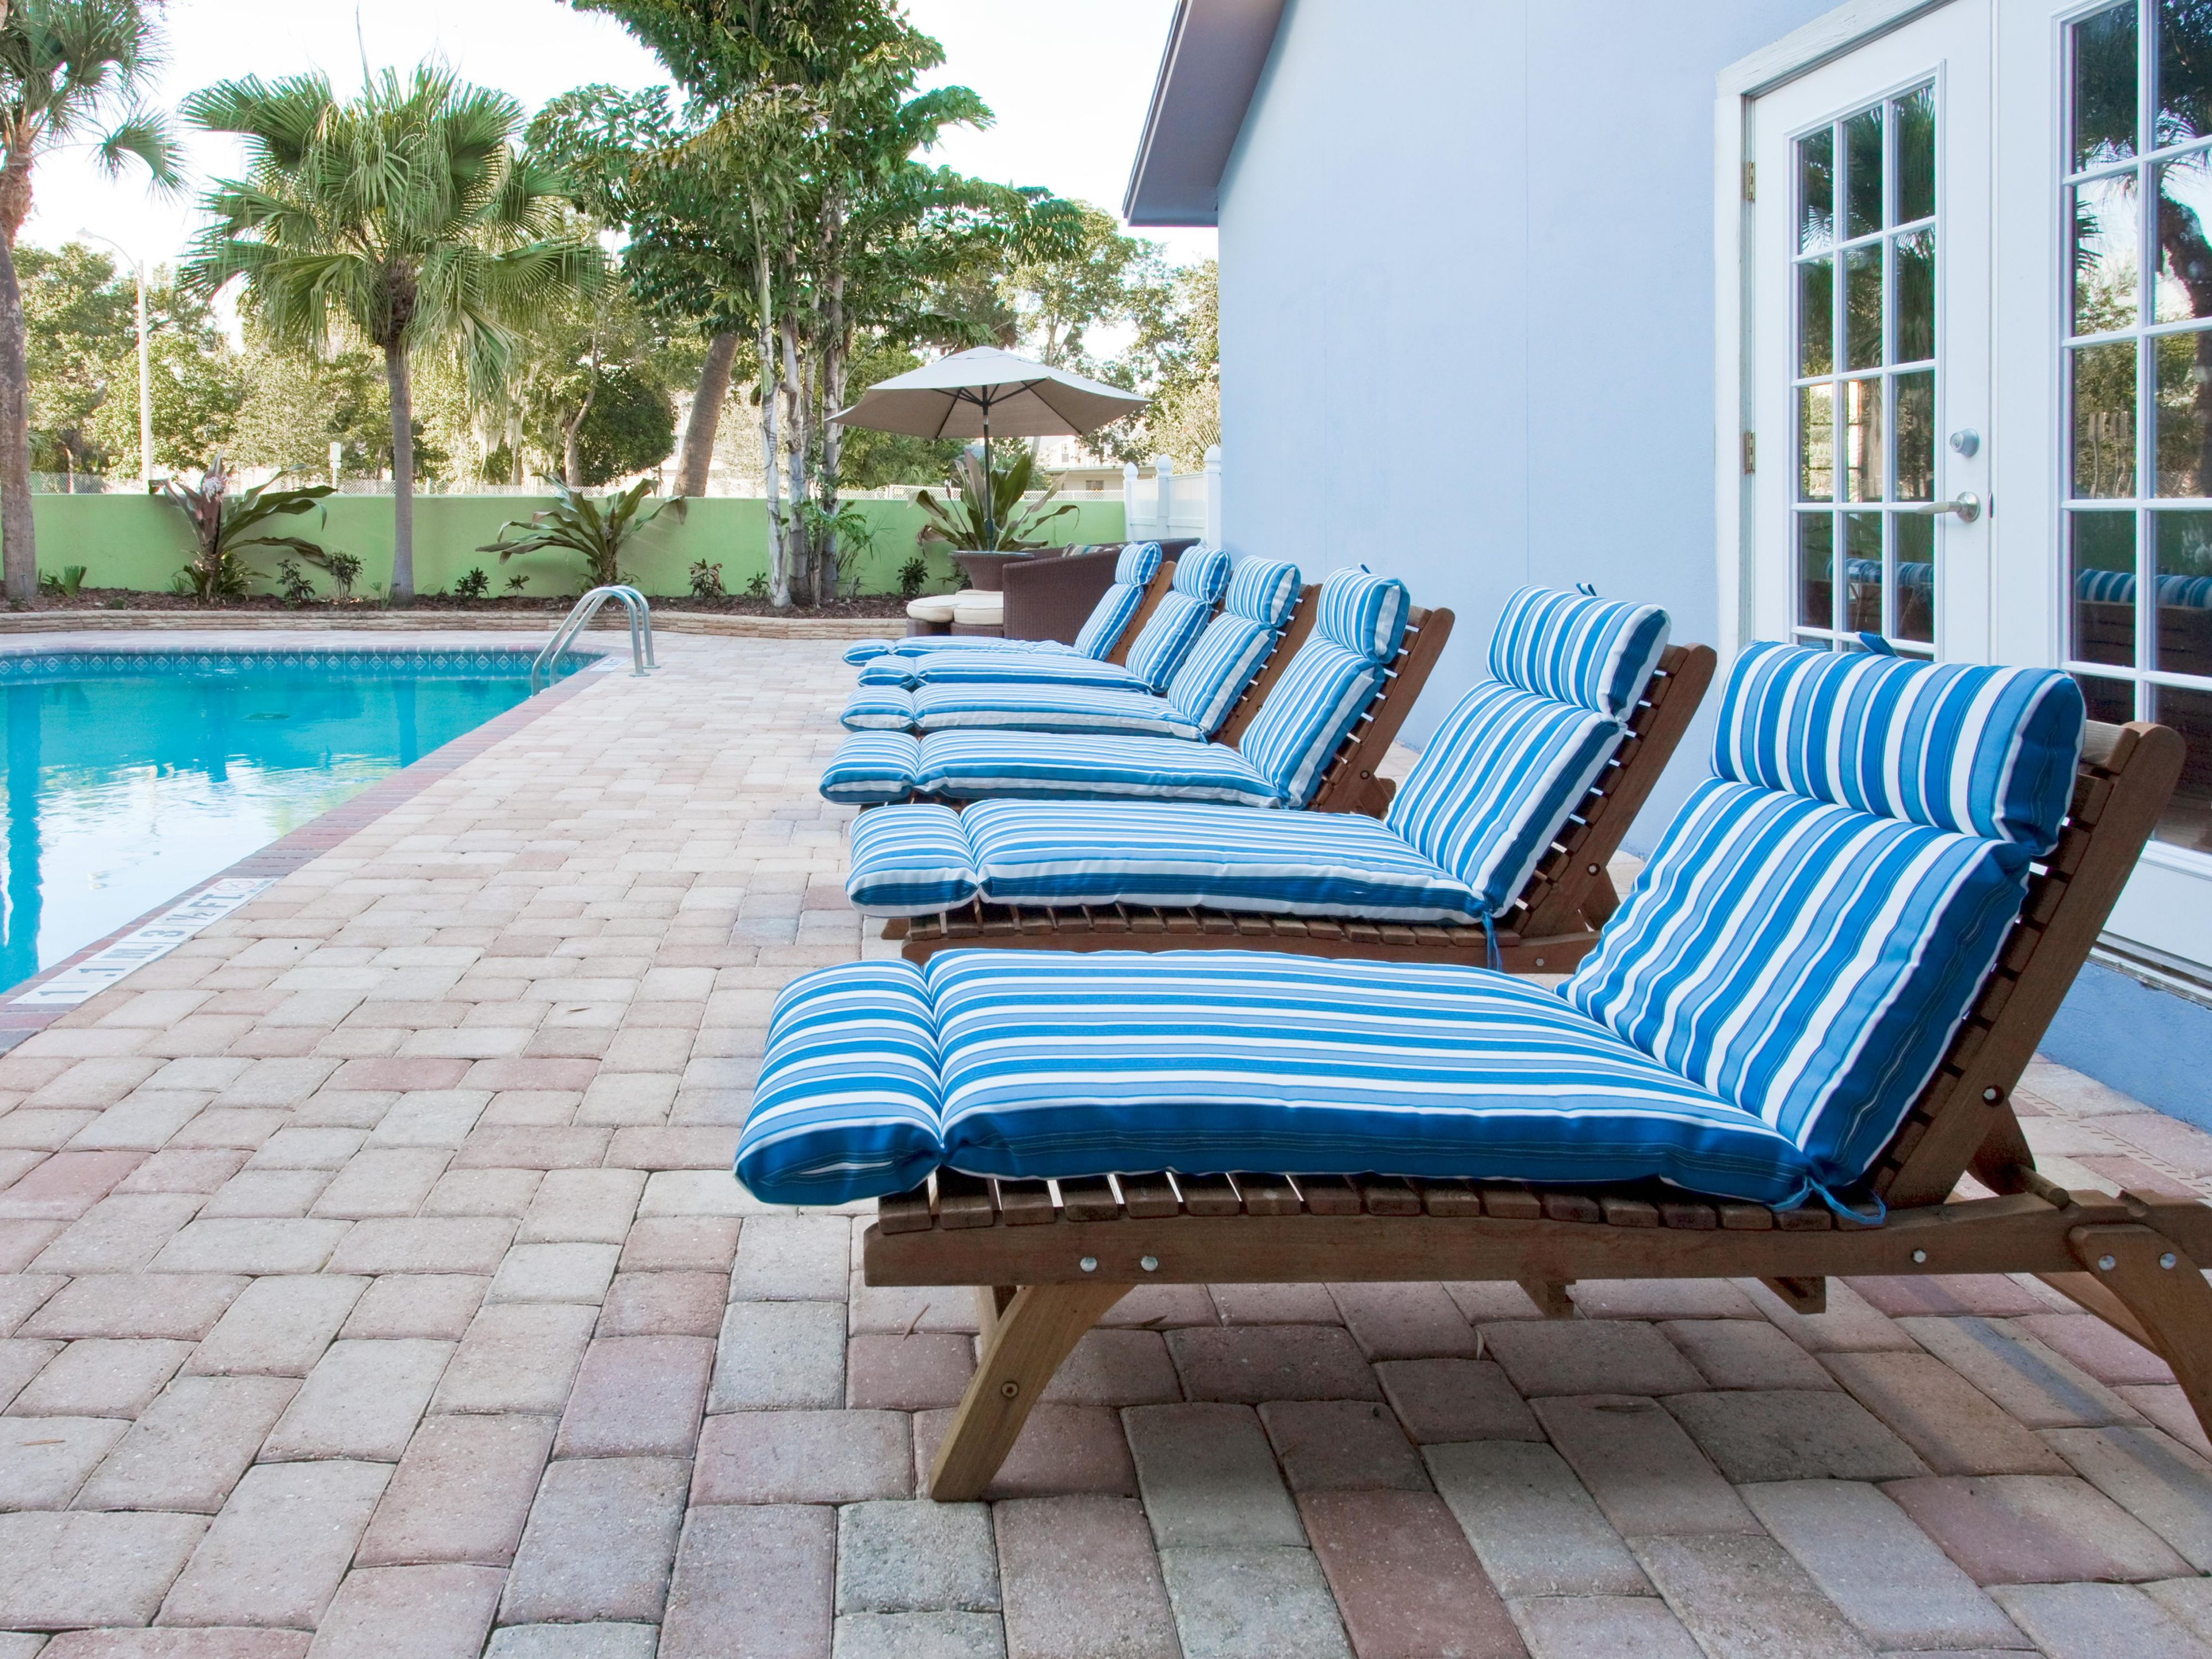 Amazing Cooldesign Outdoor Furniture St Petersburg Florida Architecture Nice Part 3